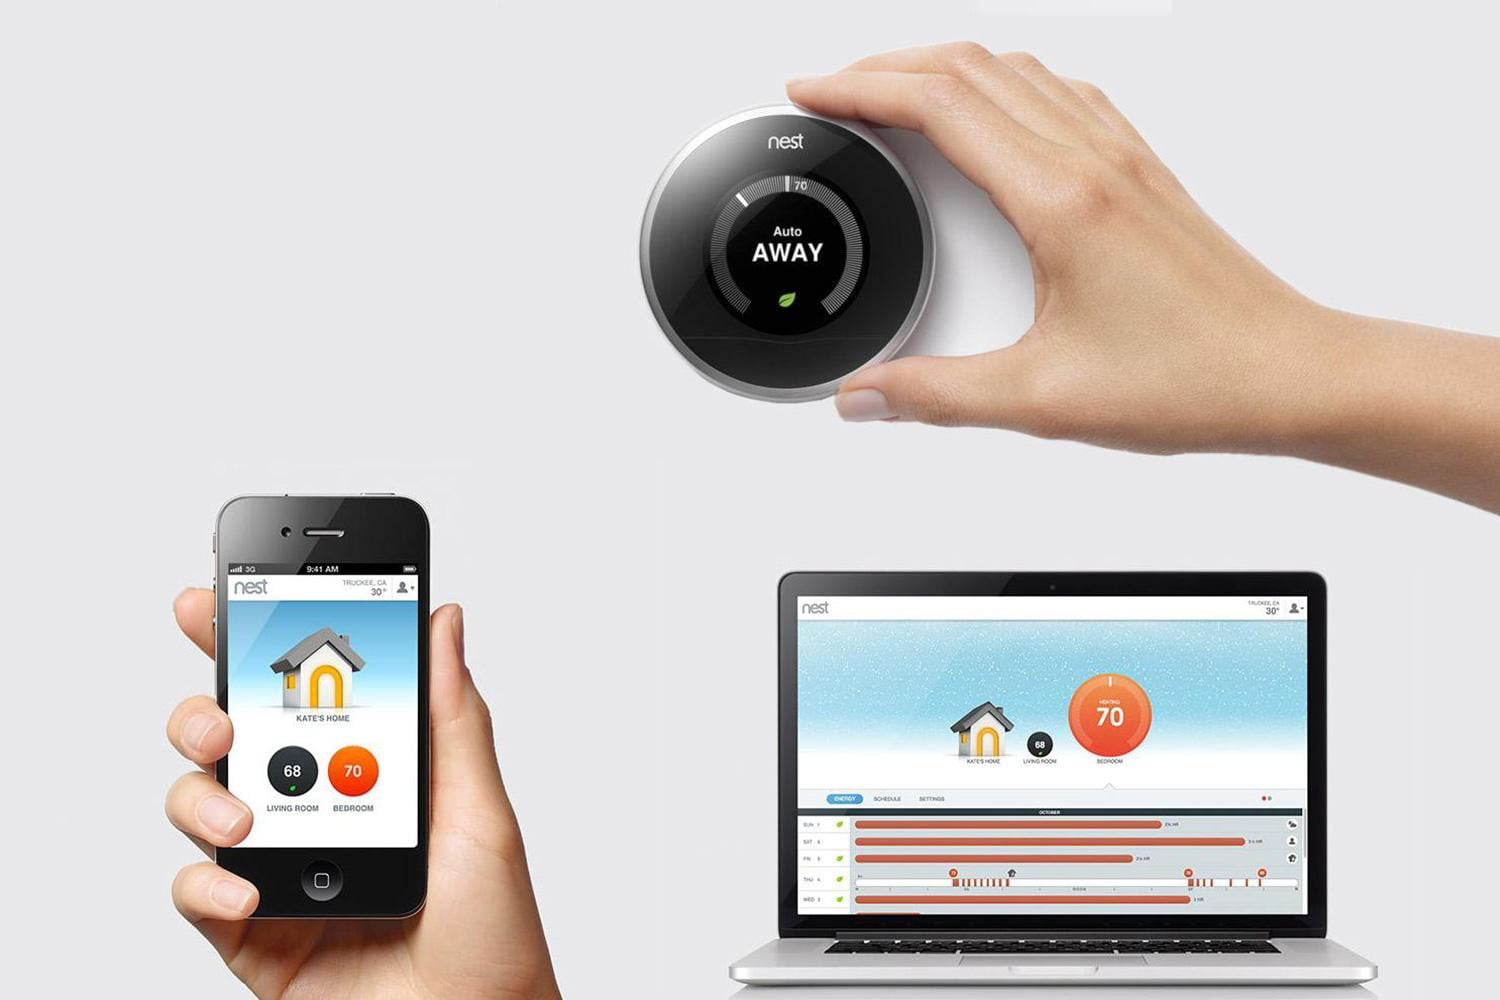 Will Nest App Give Room Temperature